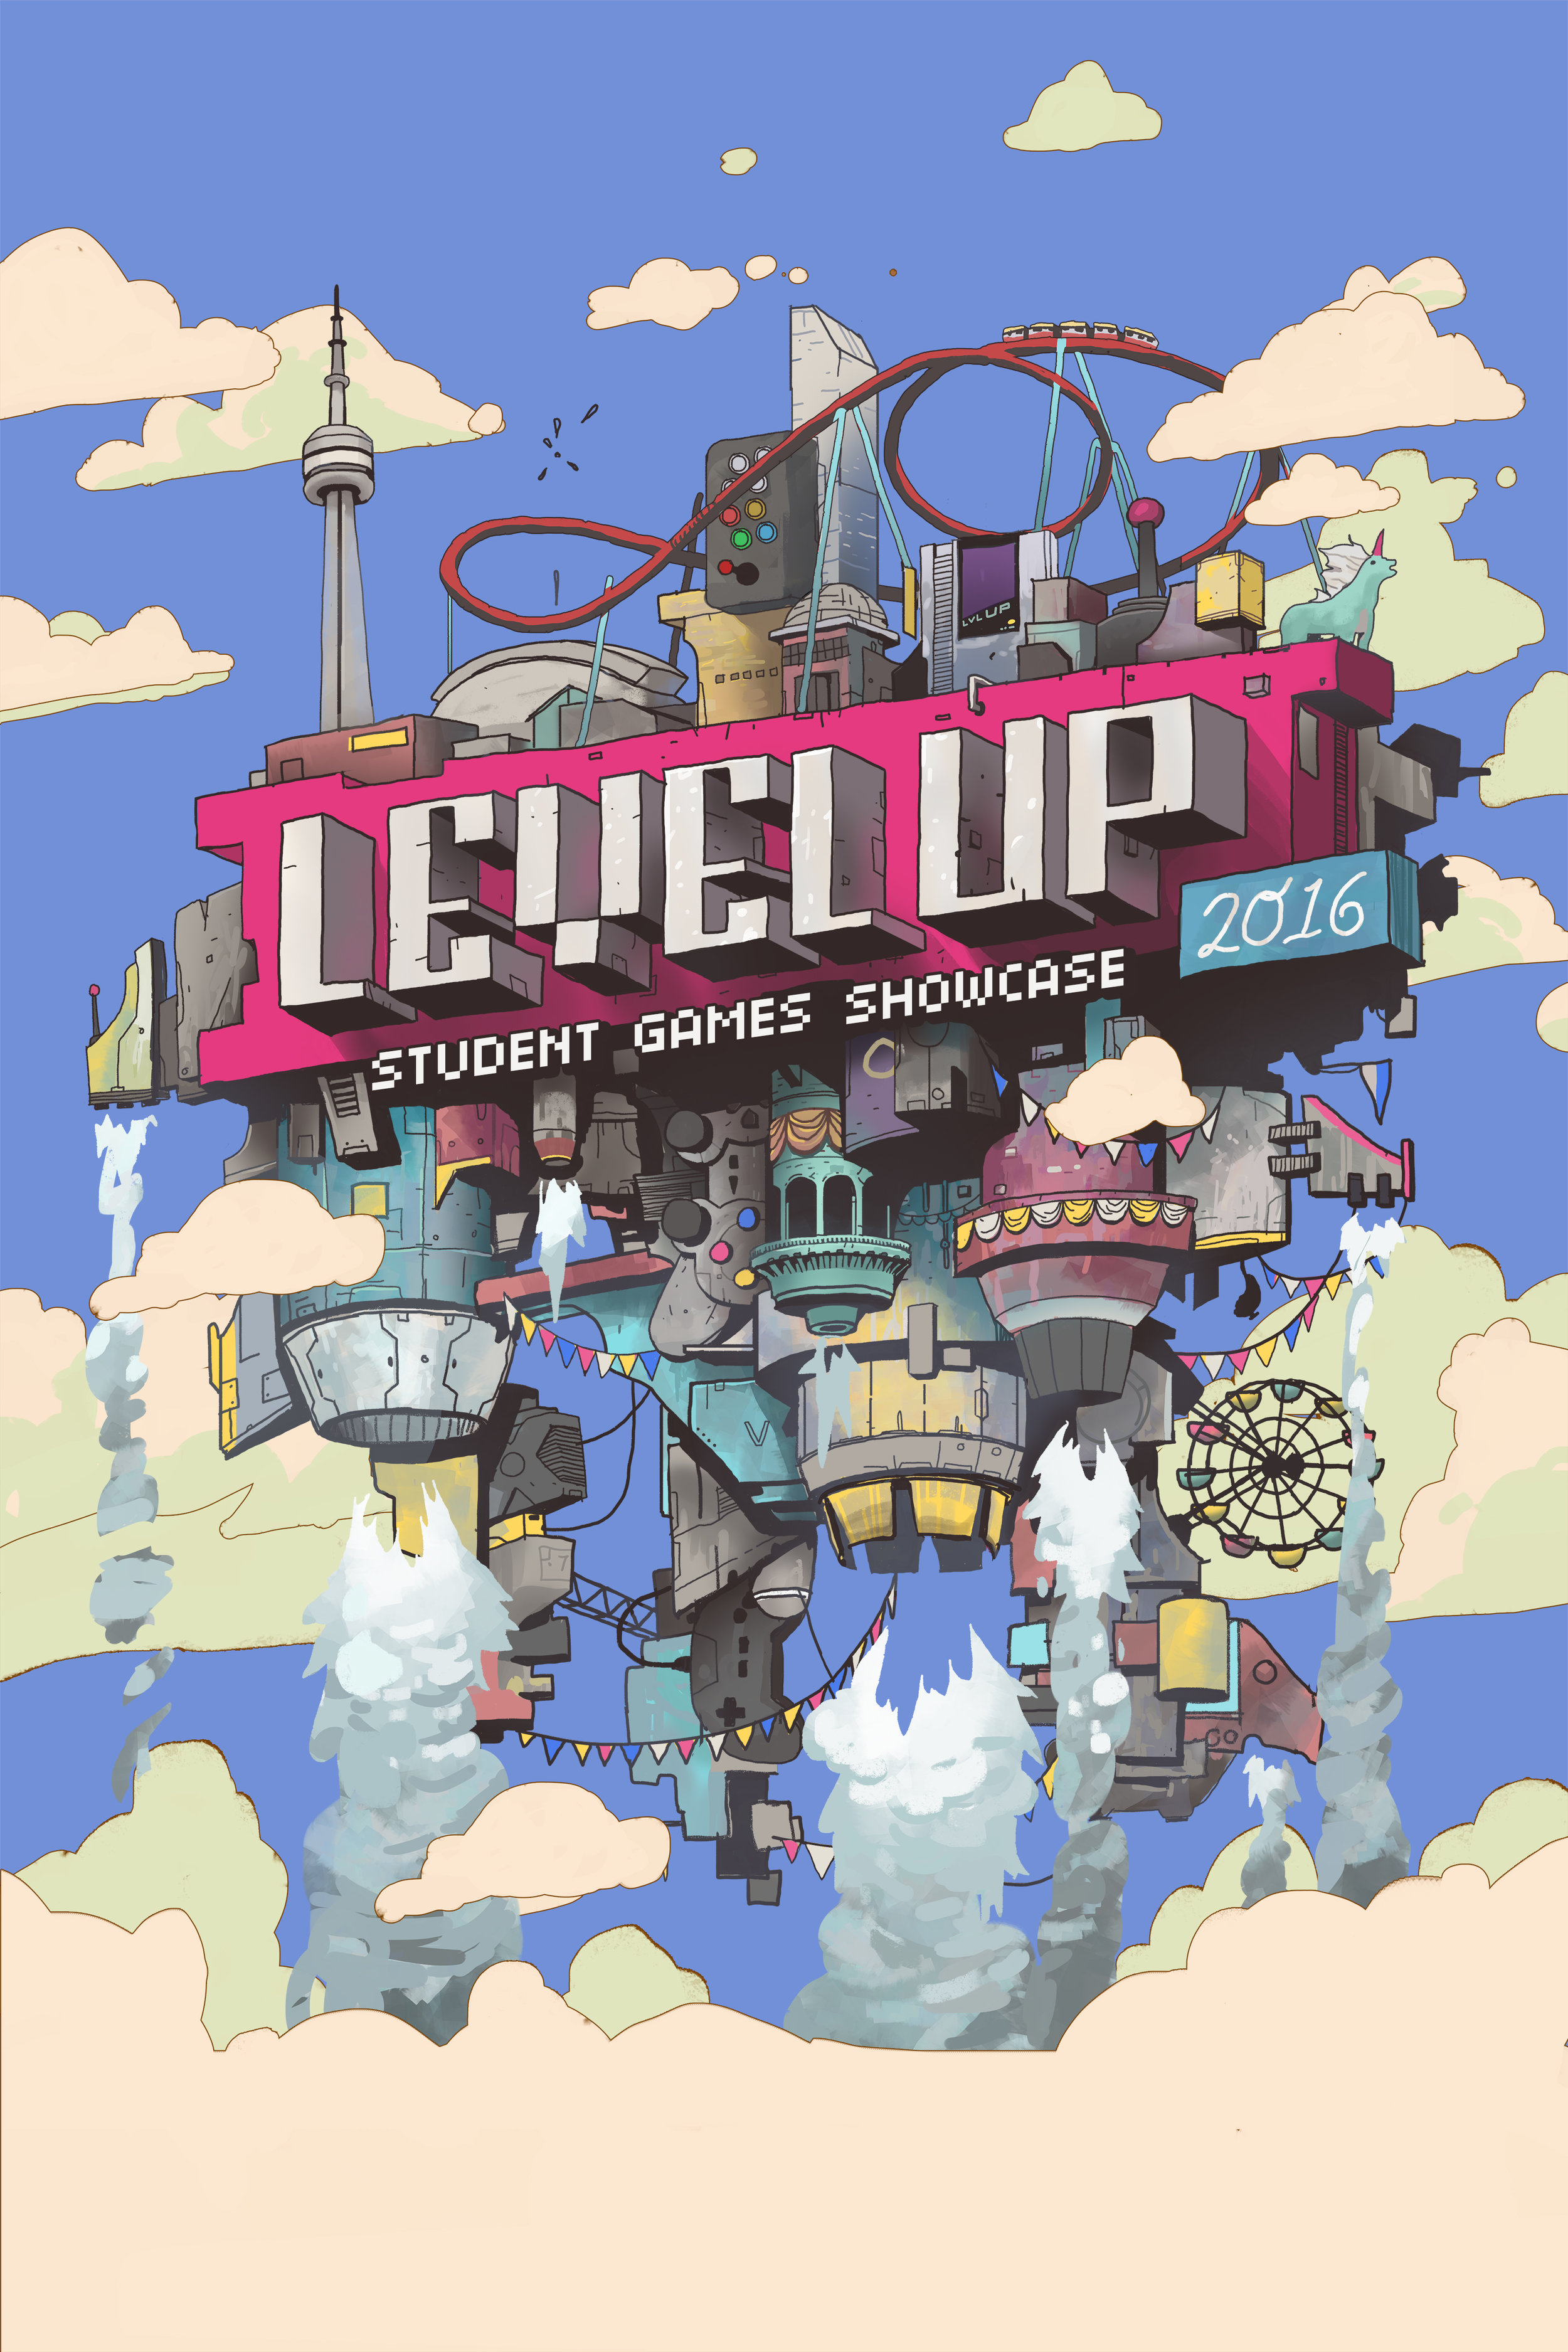 Illustration & Branding for Level Up Student Games Showcase 2016.